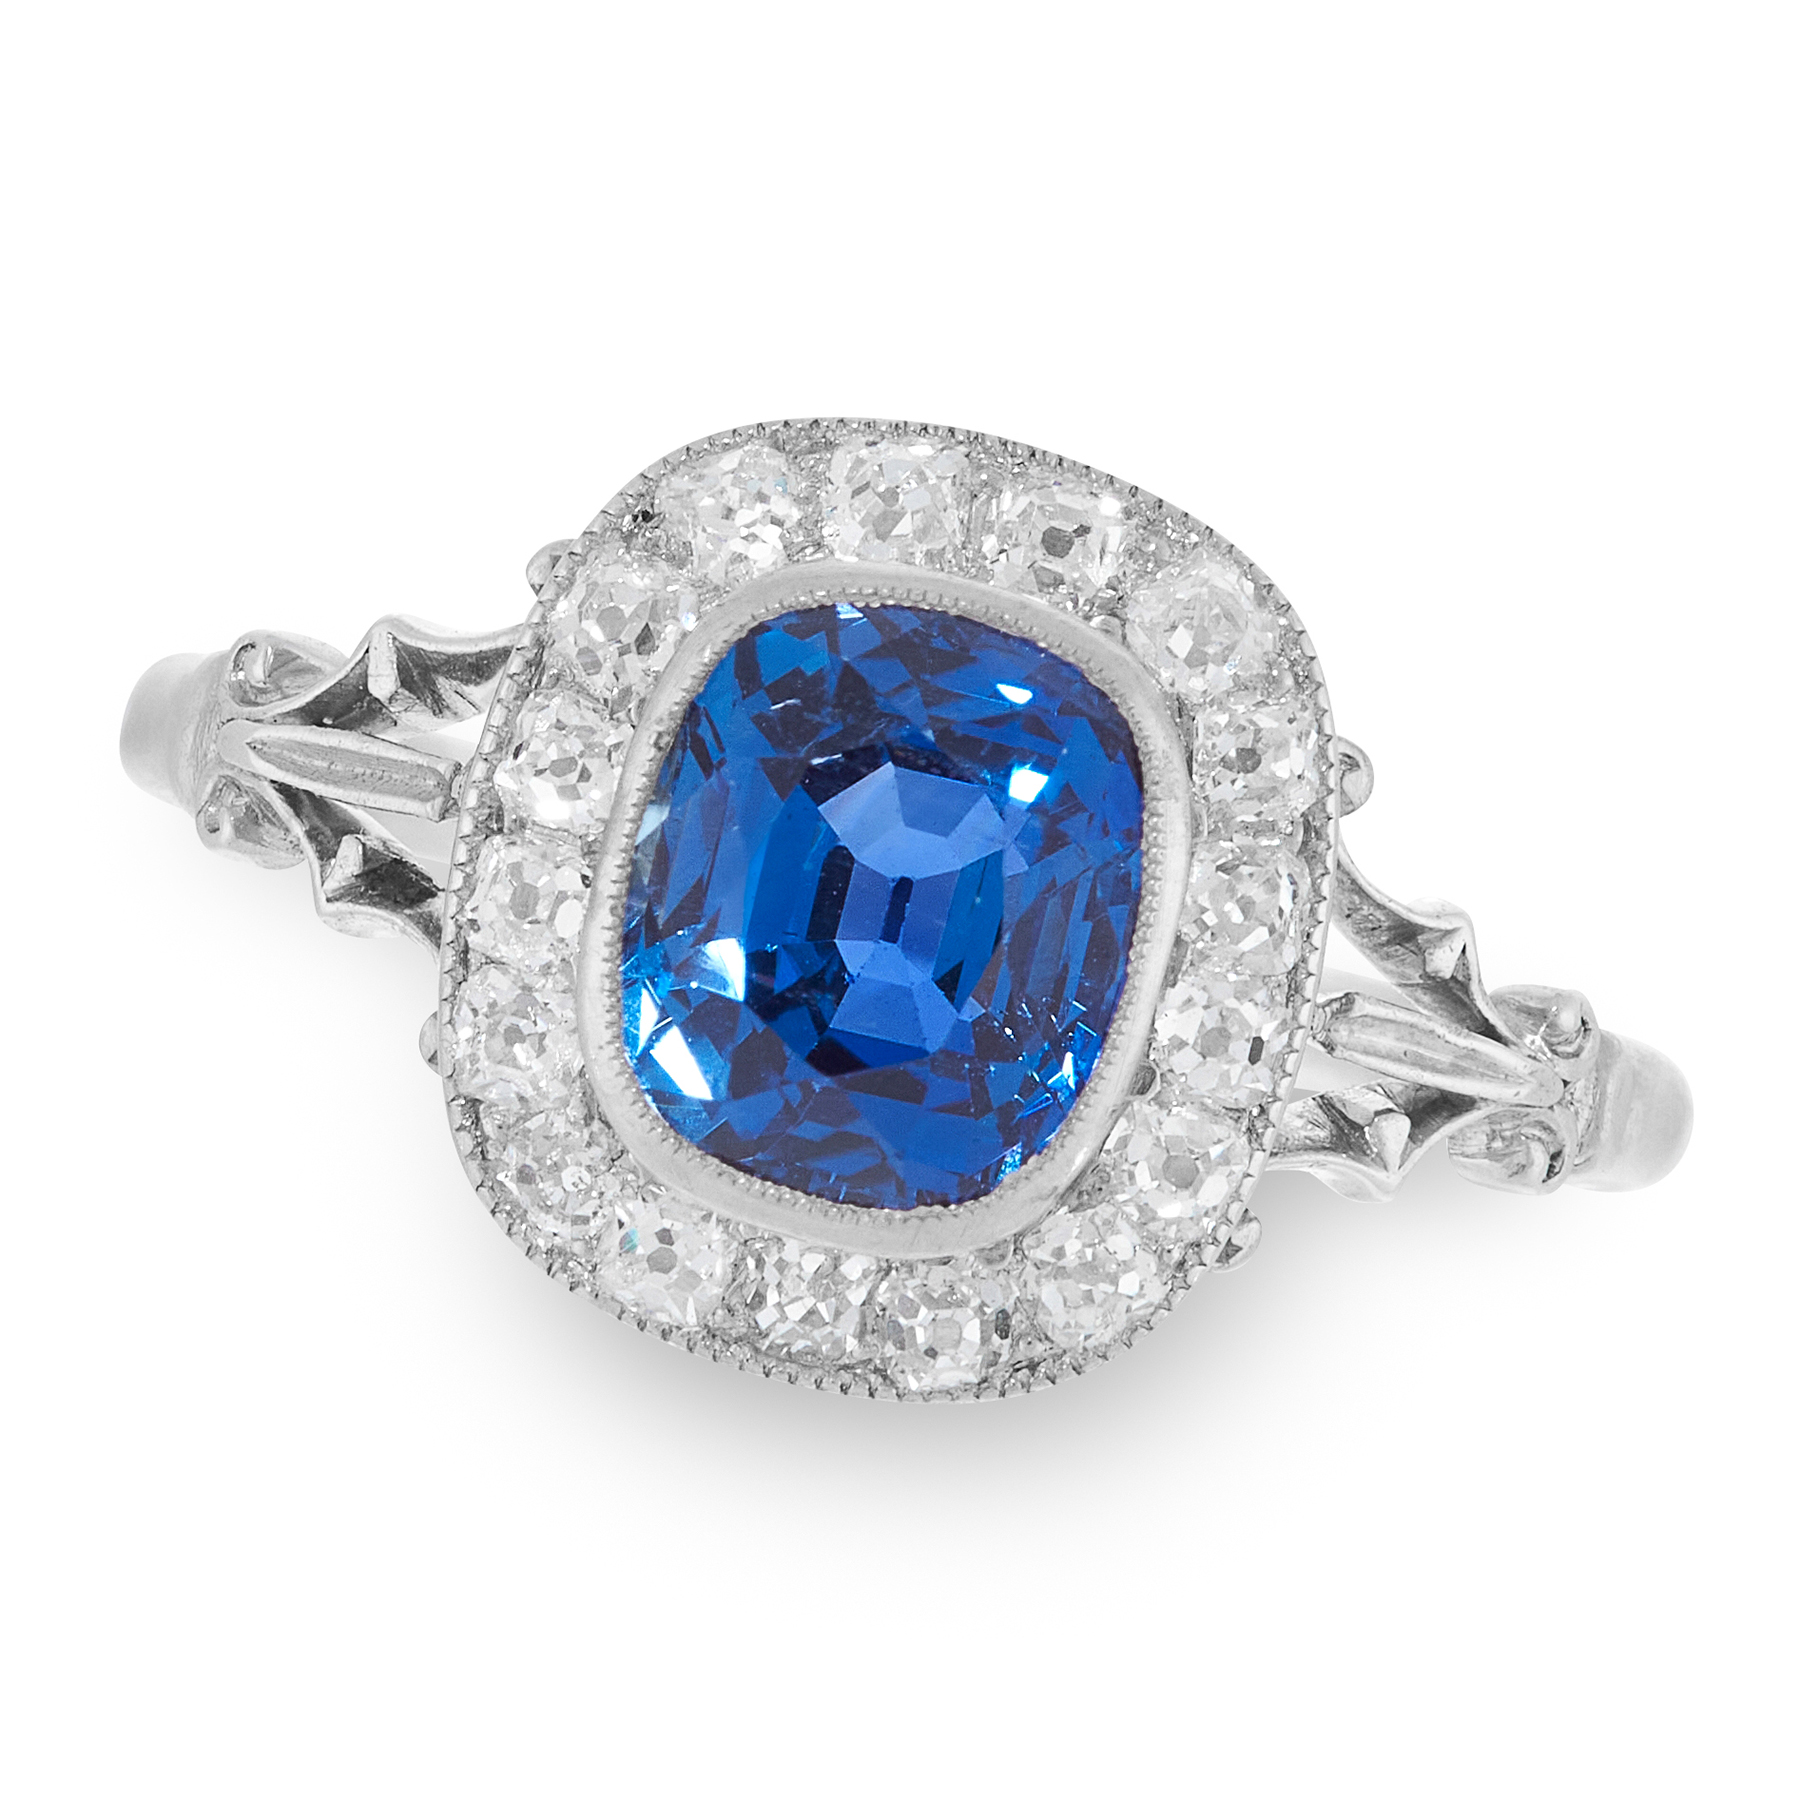 A CEYLON NO HEAT SAPPHIRE AND DIAMOND RING set with a cushion cut sapphire of 2.20 carats, within